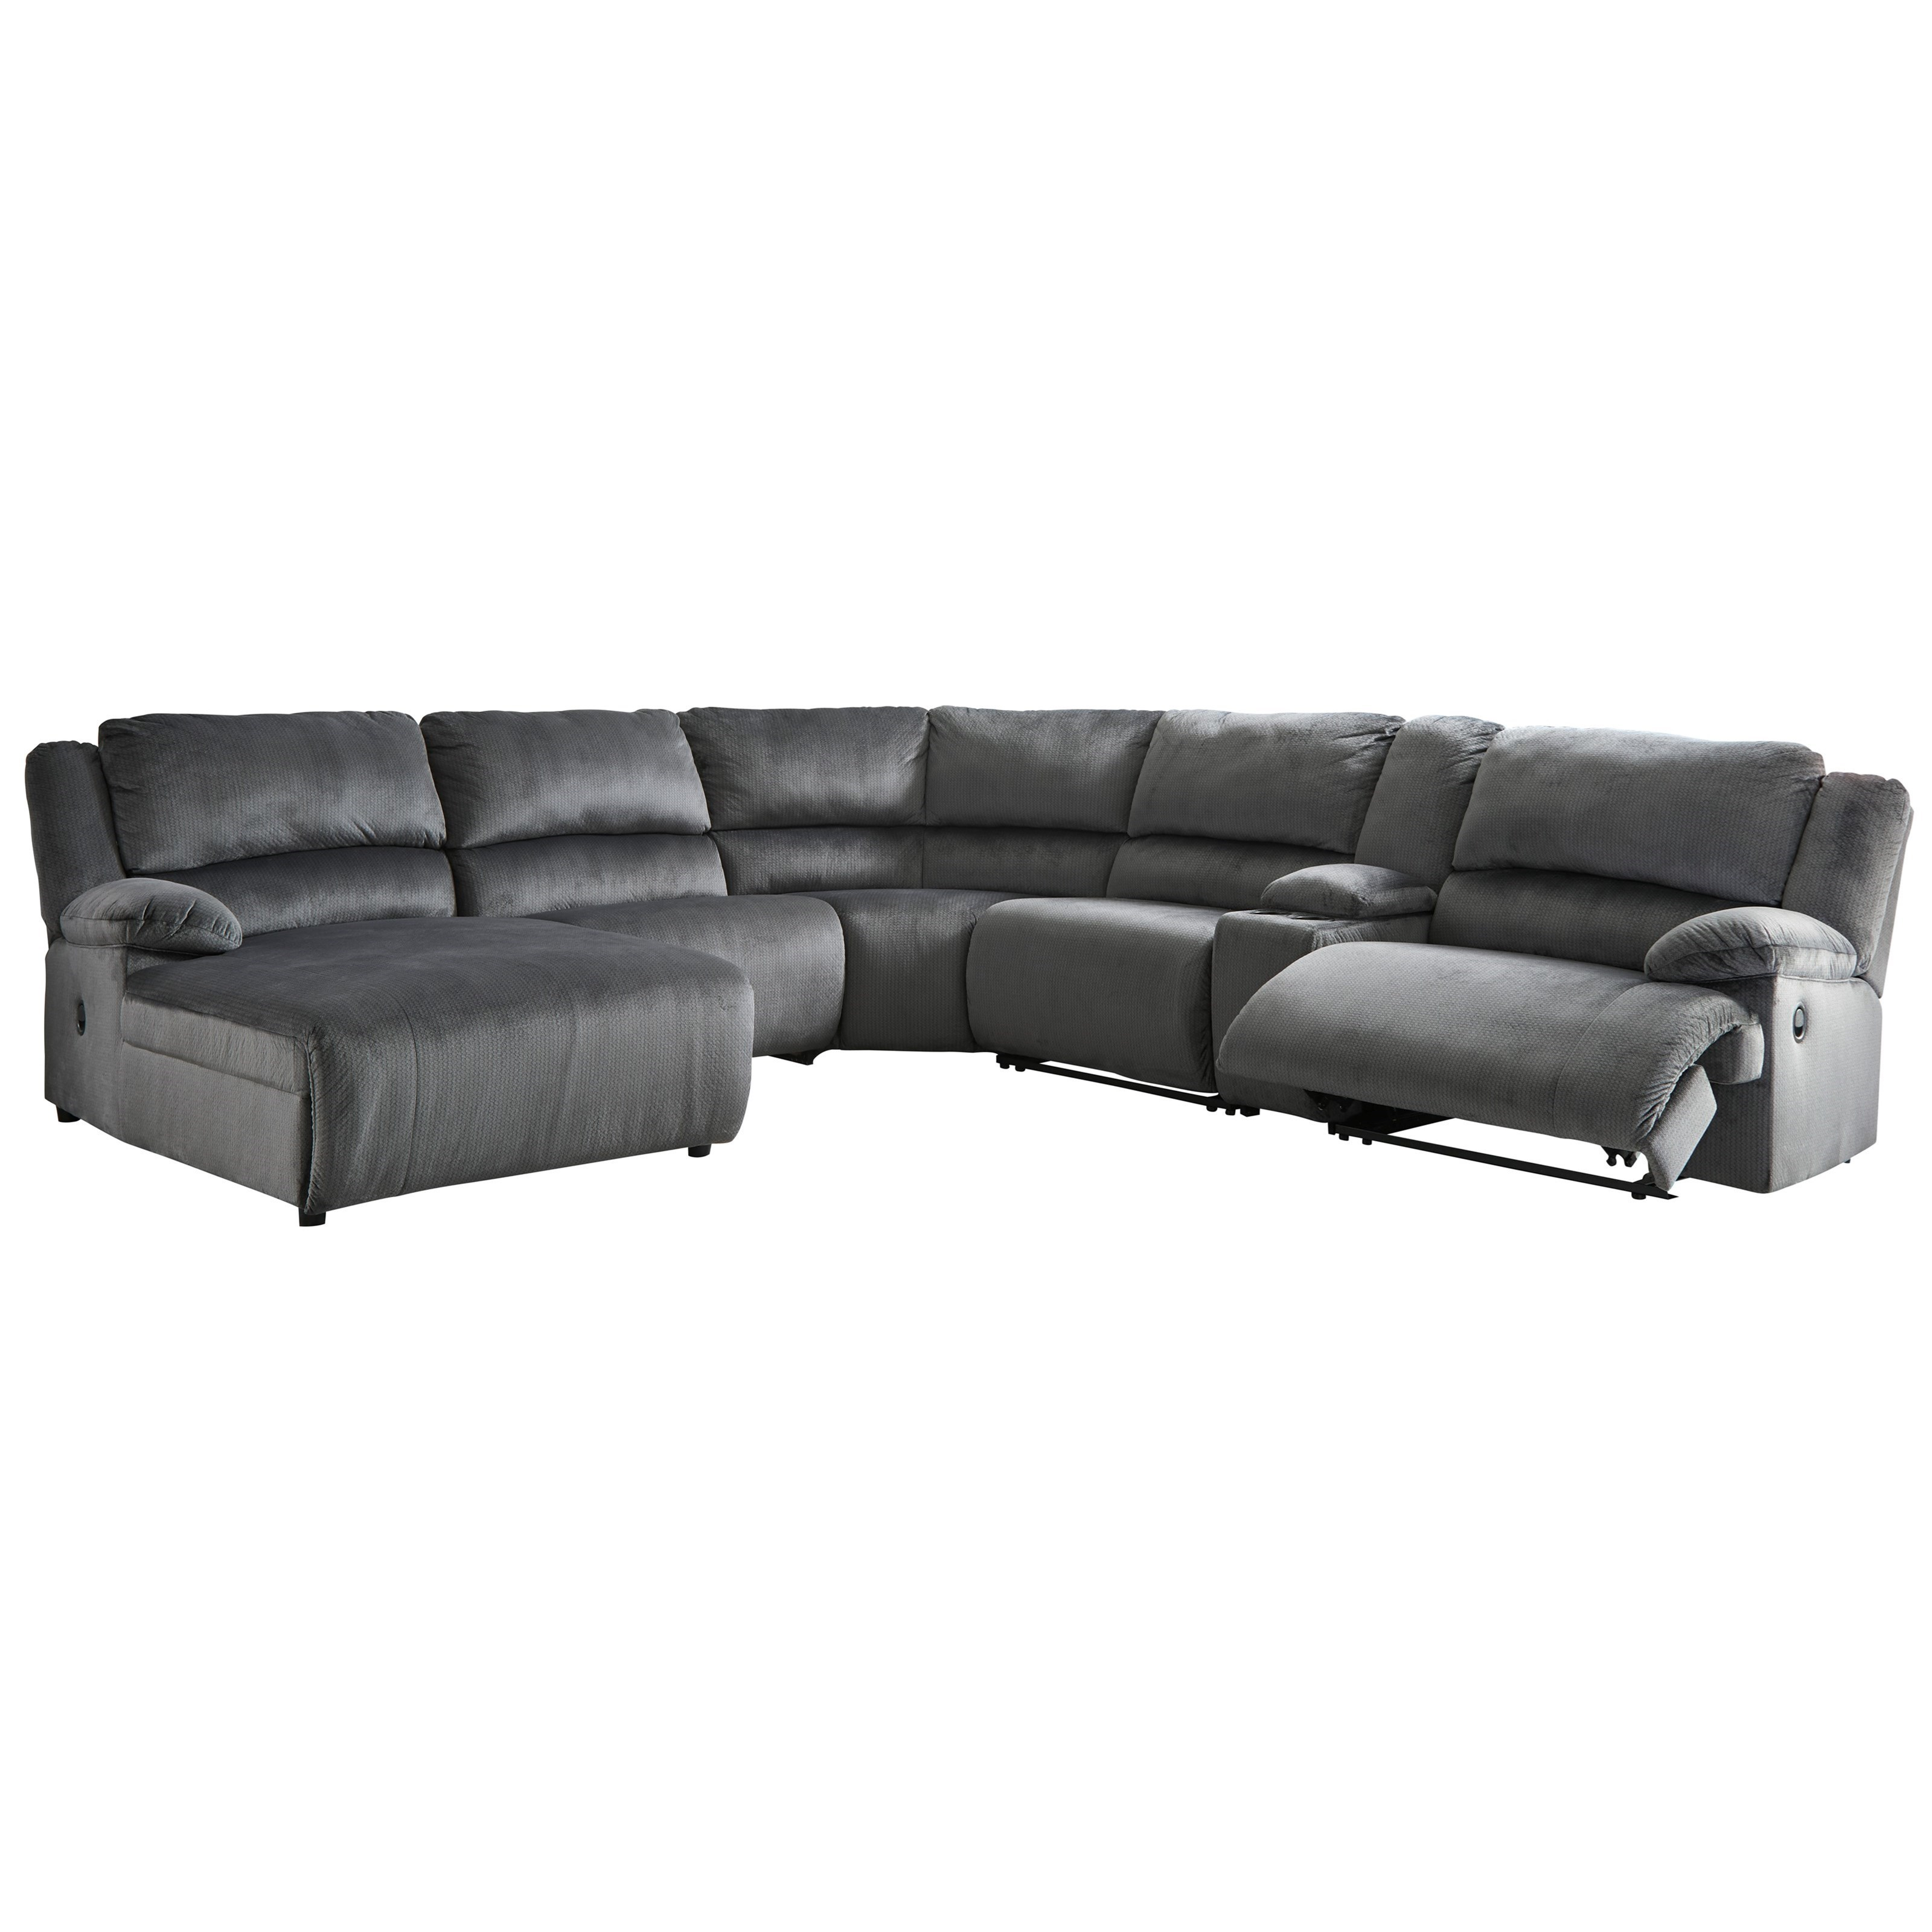 Clonmel Reclining Sectional with Chaise & Console by Signature Design by Ashley at Value City Furniture